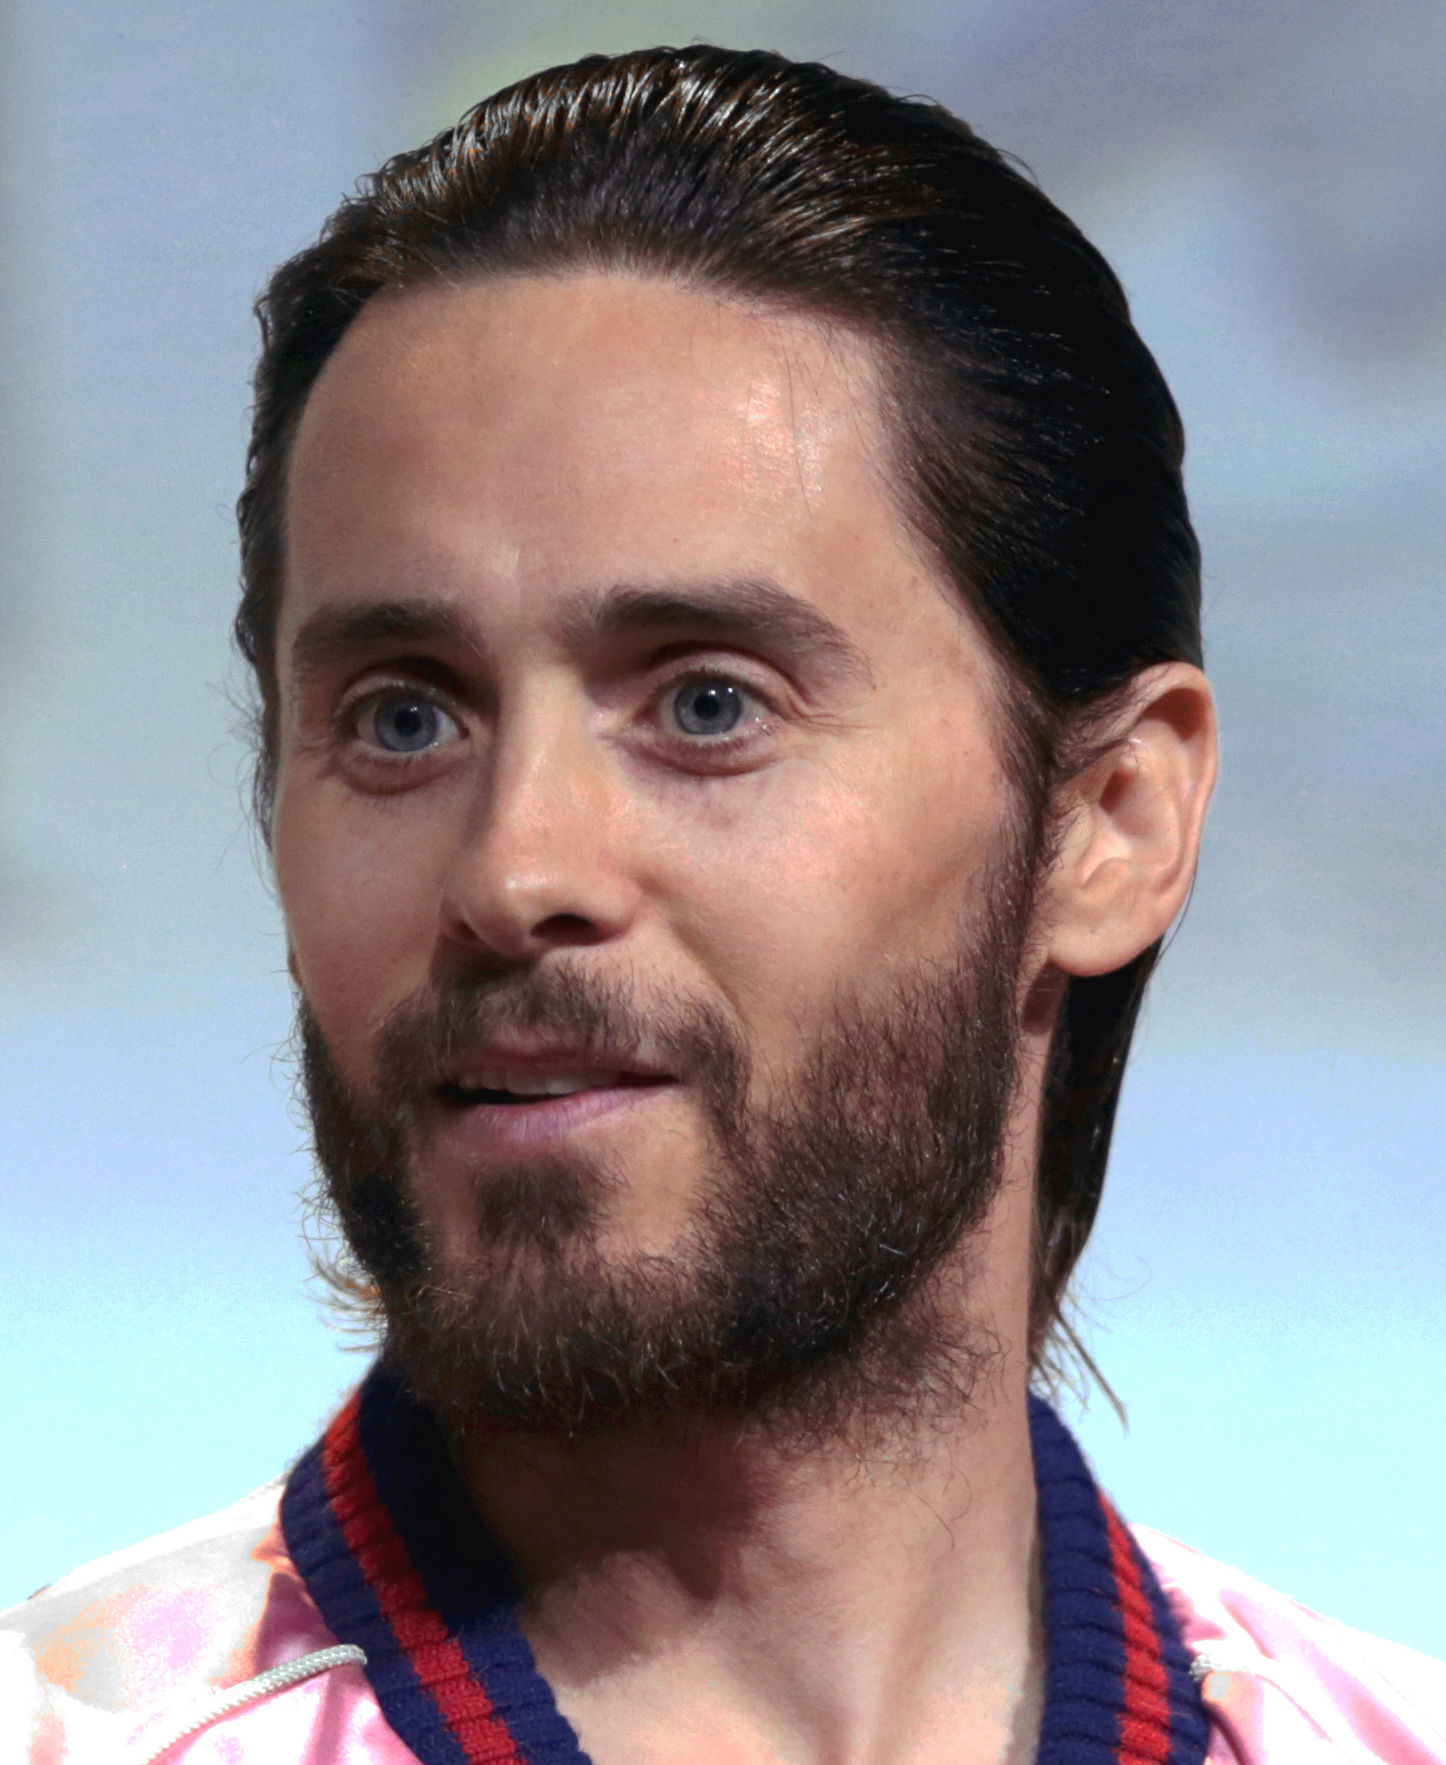 Photo of Jared Leto: American actor and musician